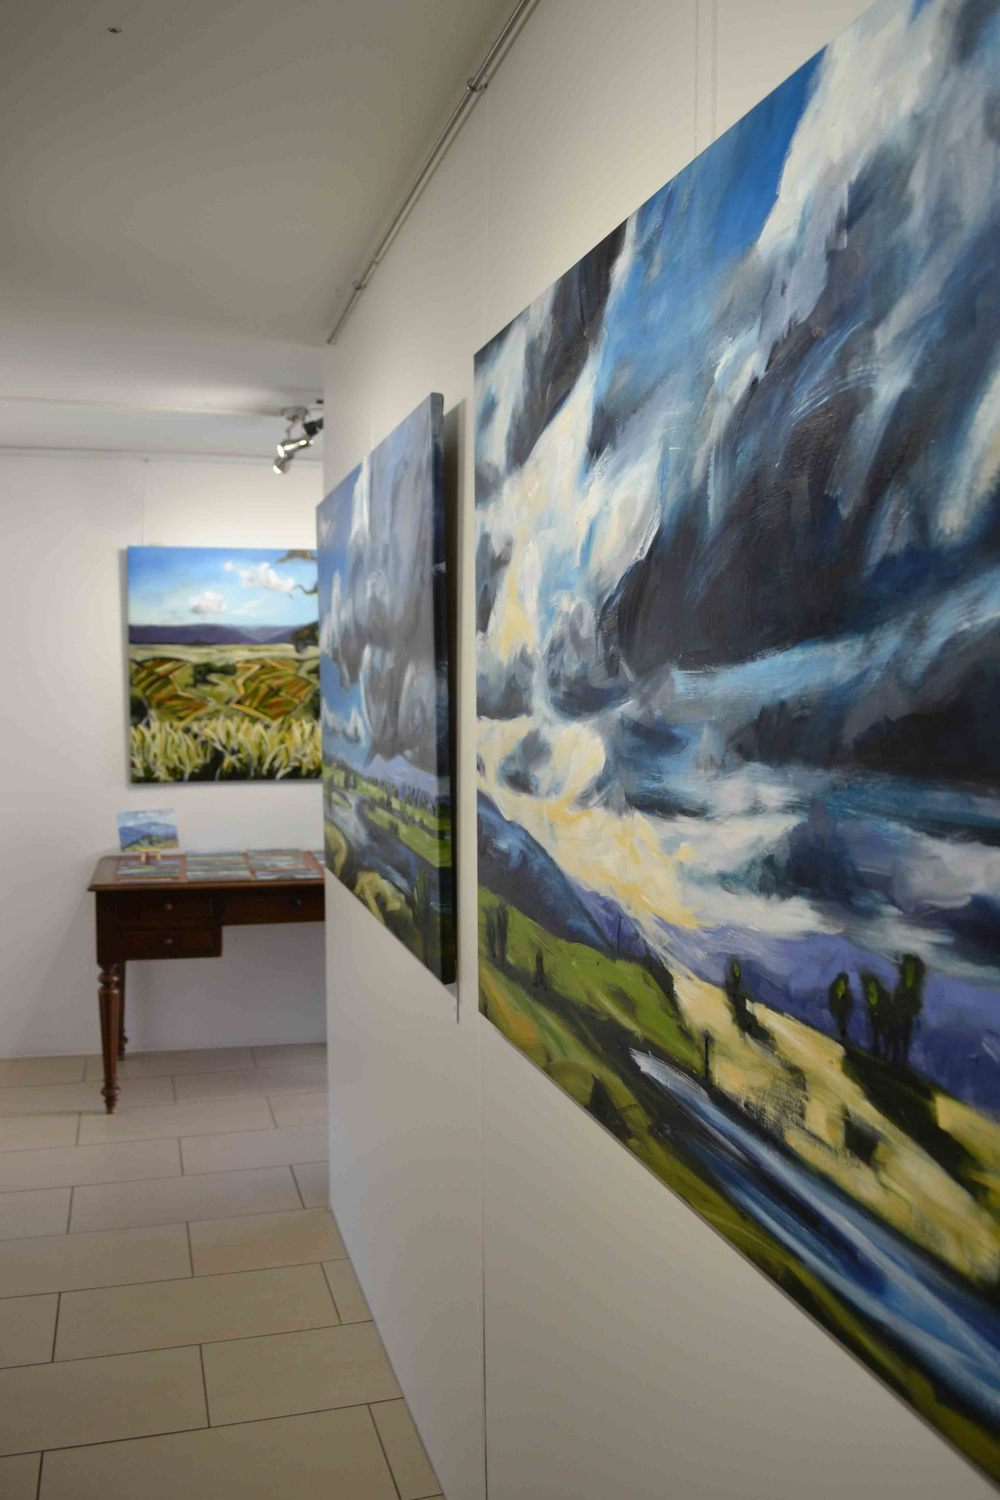 Big Australian Skies. Installation photo of the current exhibition. Images left to right. 1/ Towards Drayton's Vineyard, oil on cotton canvas, 86 x 116cm 2/On the table, various en plein air oil paintings from Italy. 3/ Gilleston Island (after the flood), oil on cotton, 86 x 115cm. 4/ Evening Light on Teddy's Hill, oil on cotton, 86 x 115cm.